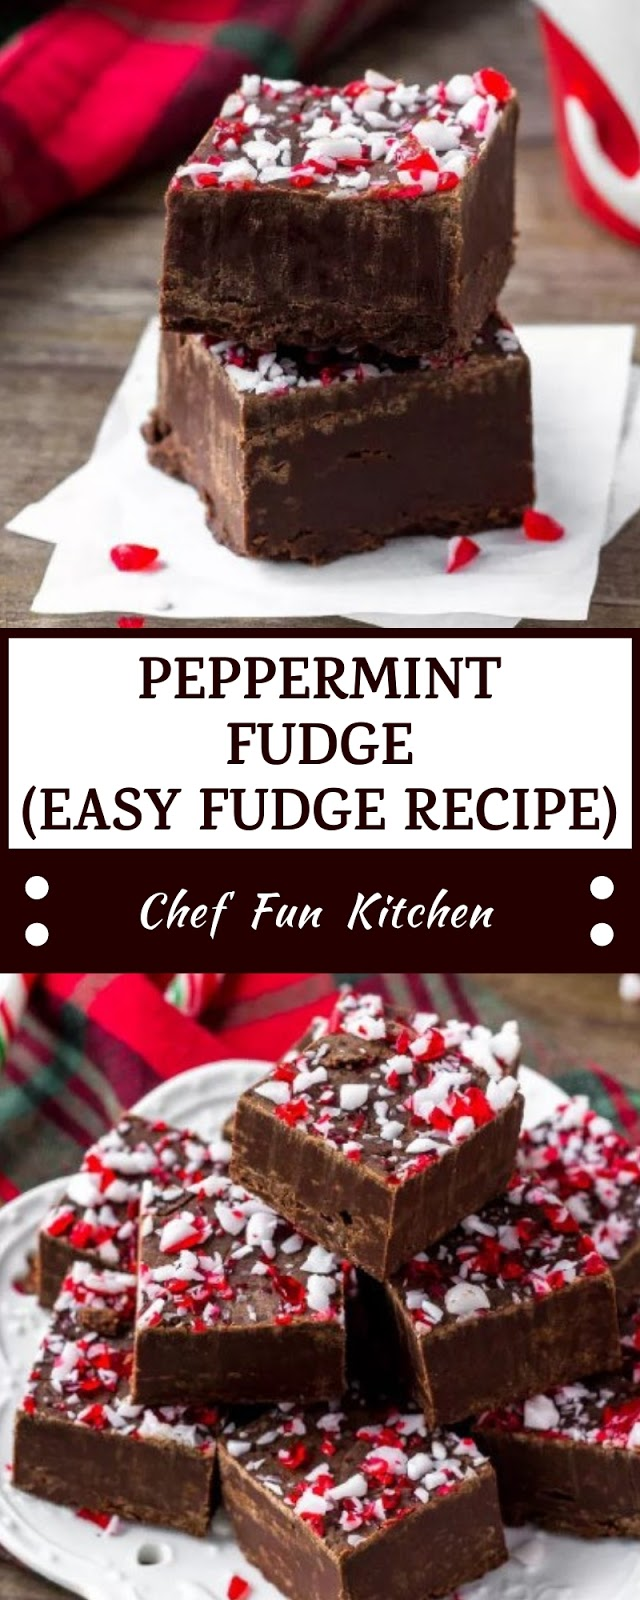 PEPPERMINT FUDGE (EASY FUDGE RECIPE)